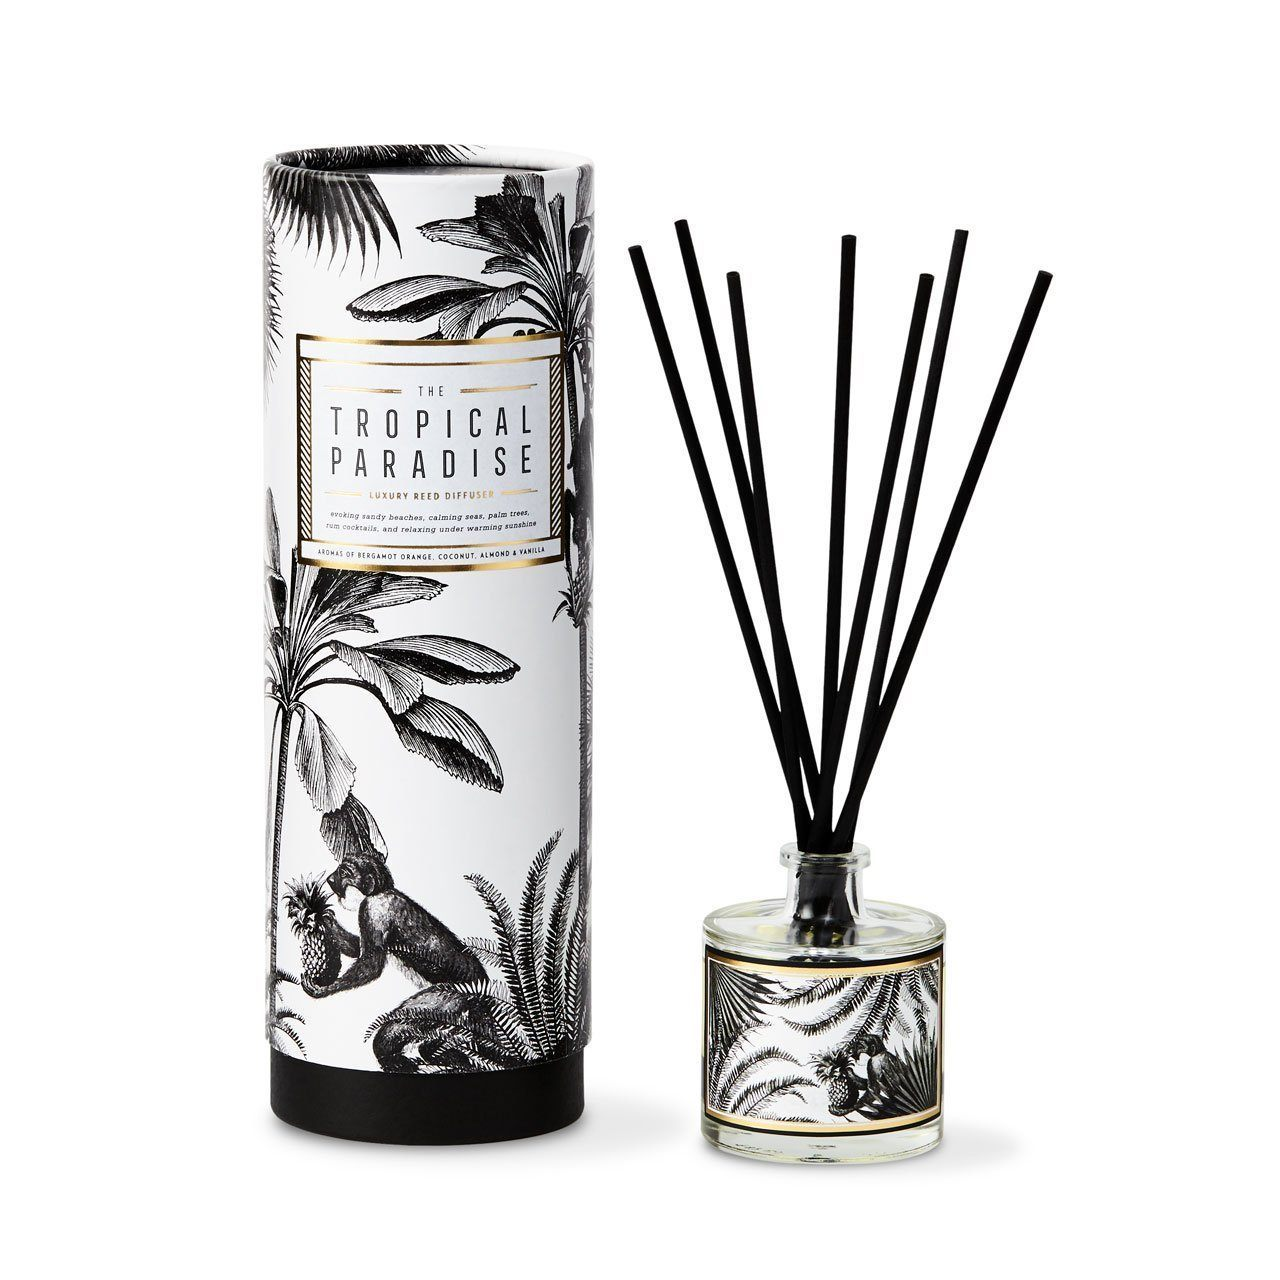 The Tropical Paradise Luxury Reed Diffuser